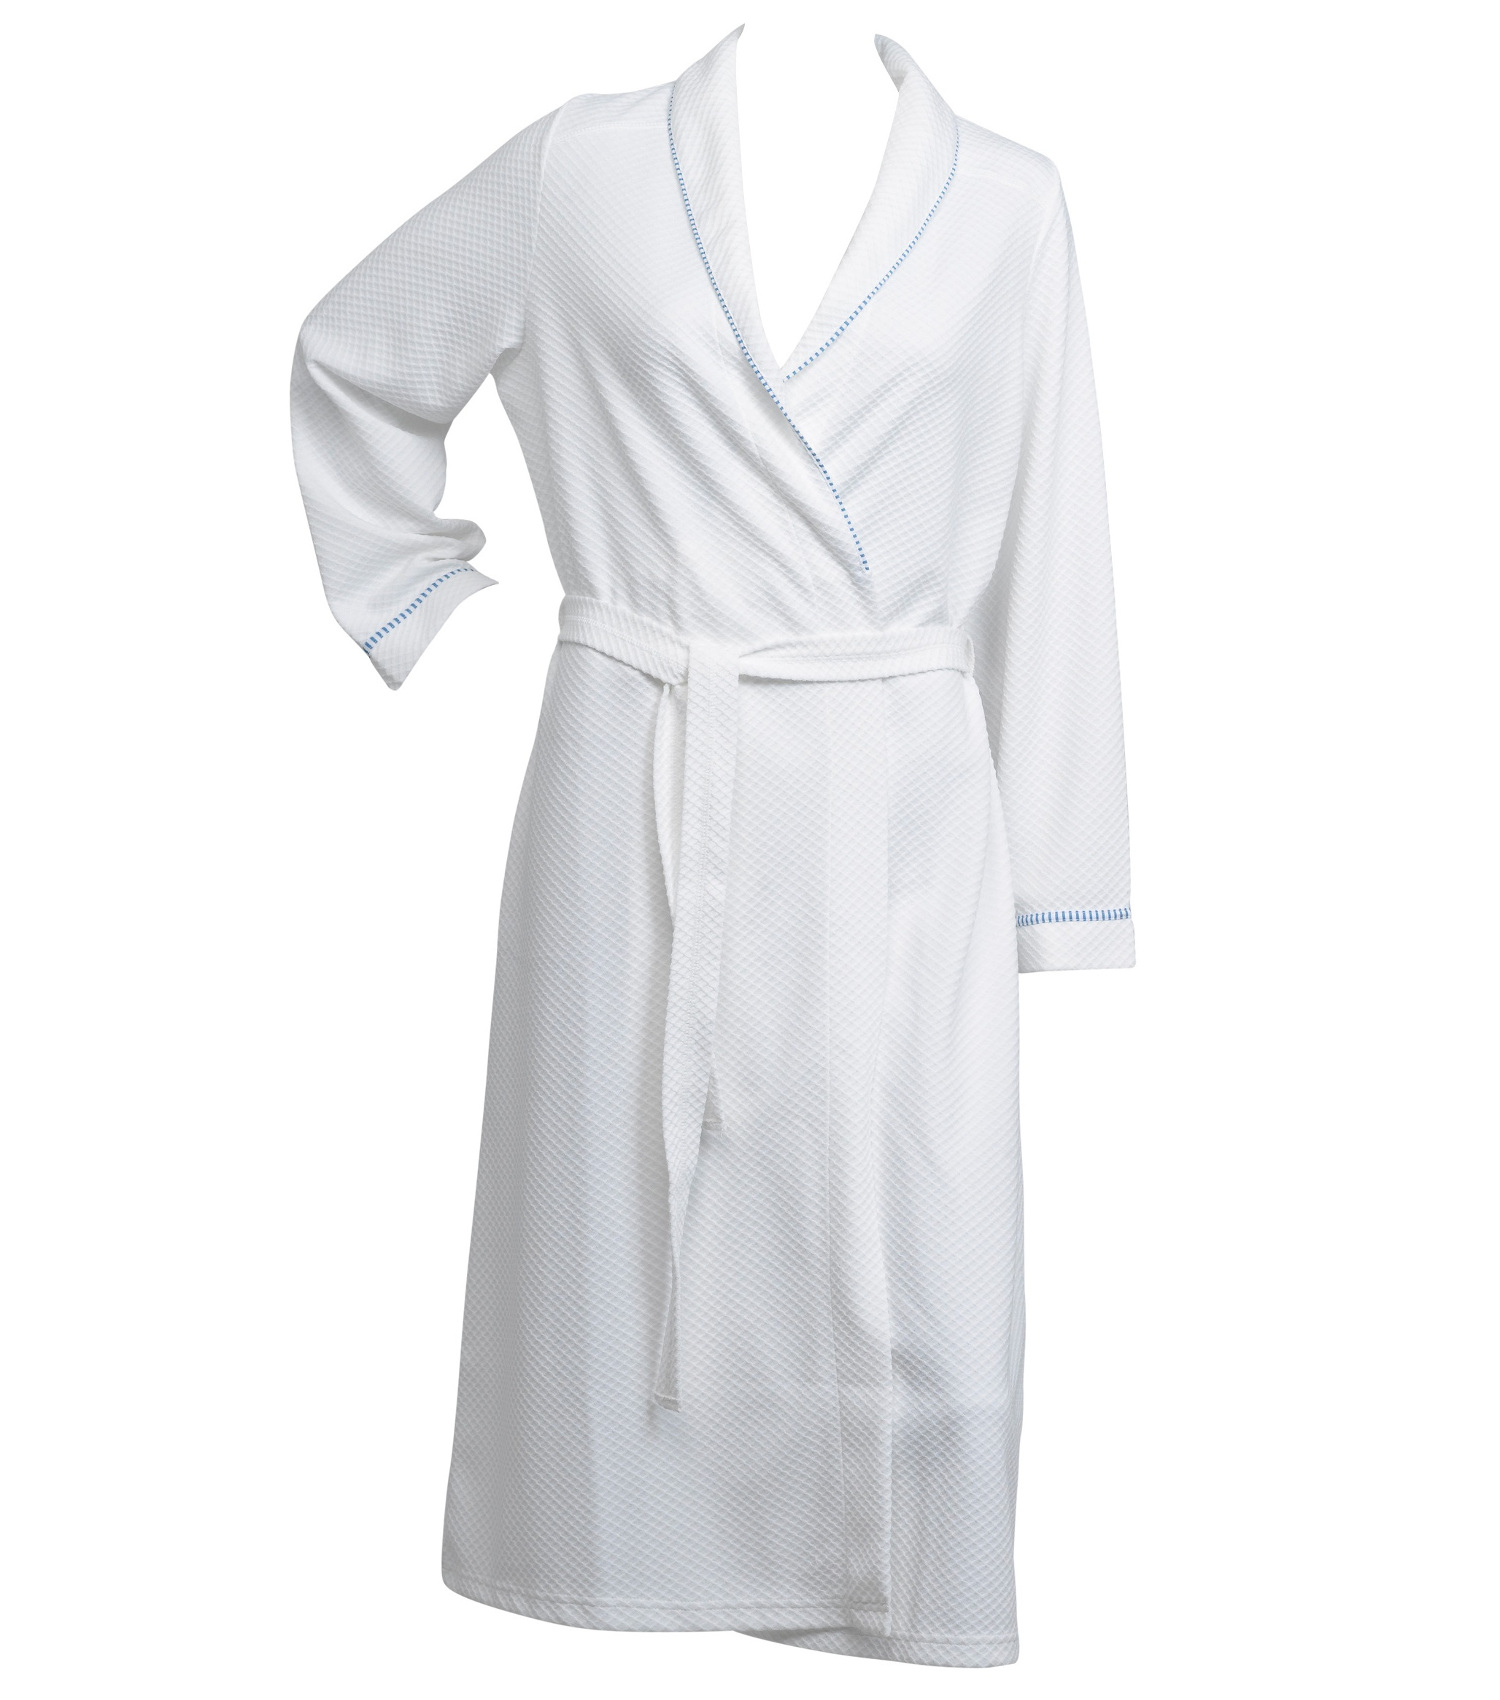 Buy Men's Nightwear at John Lewis. Choose from a wide range of pyjamas, dressing gowns and slippers. dressing gowns and slippers. Free Standard Delivery on all orders over £ White (8) White.